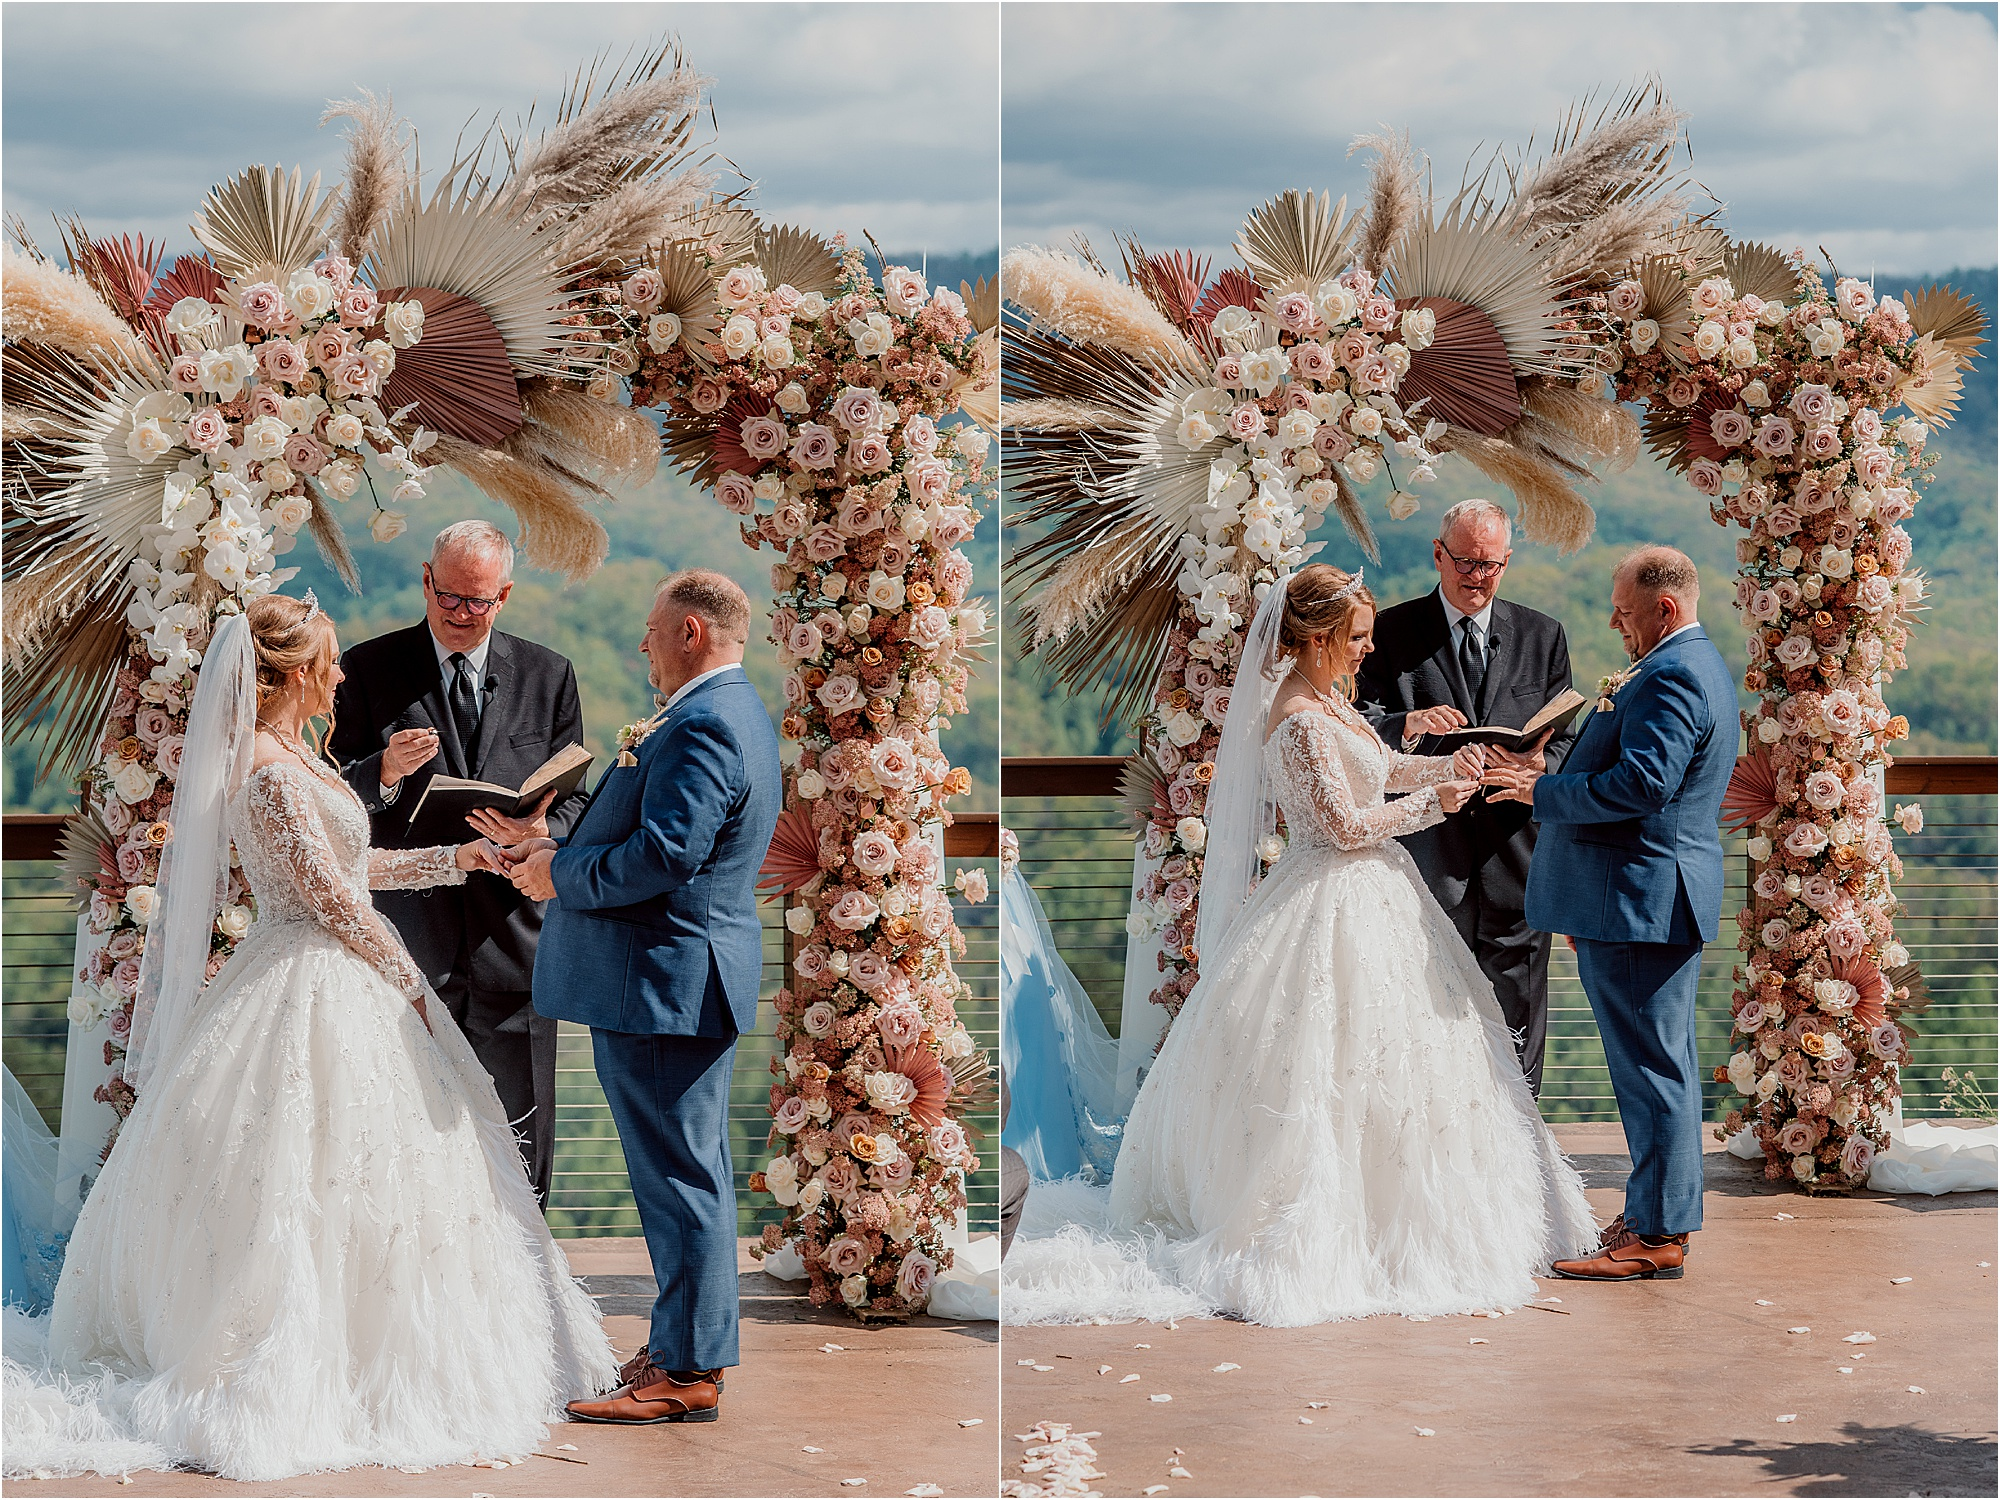 bride and groom exchange wedding rings at ceremony